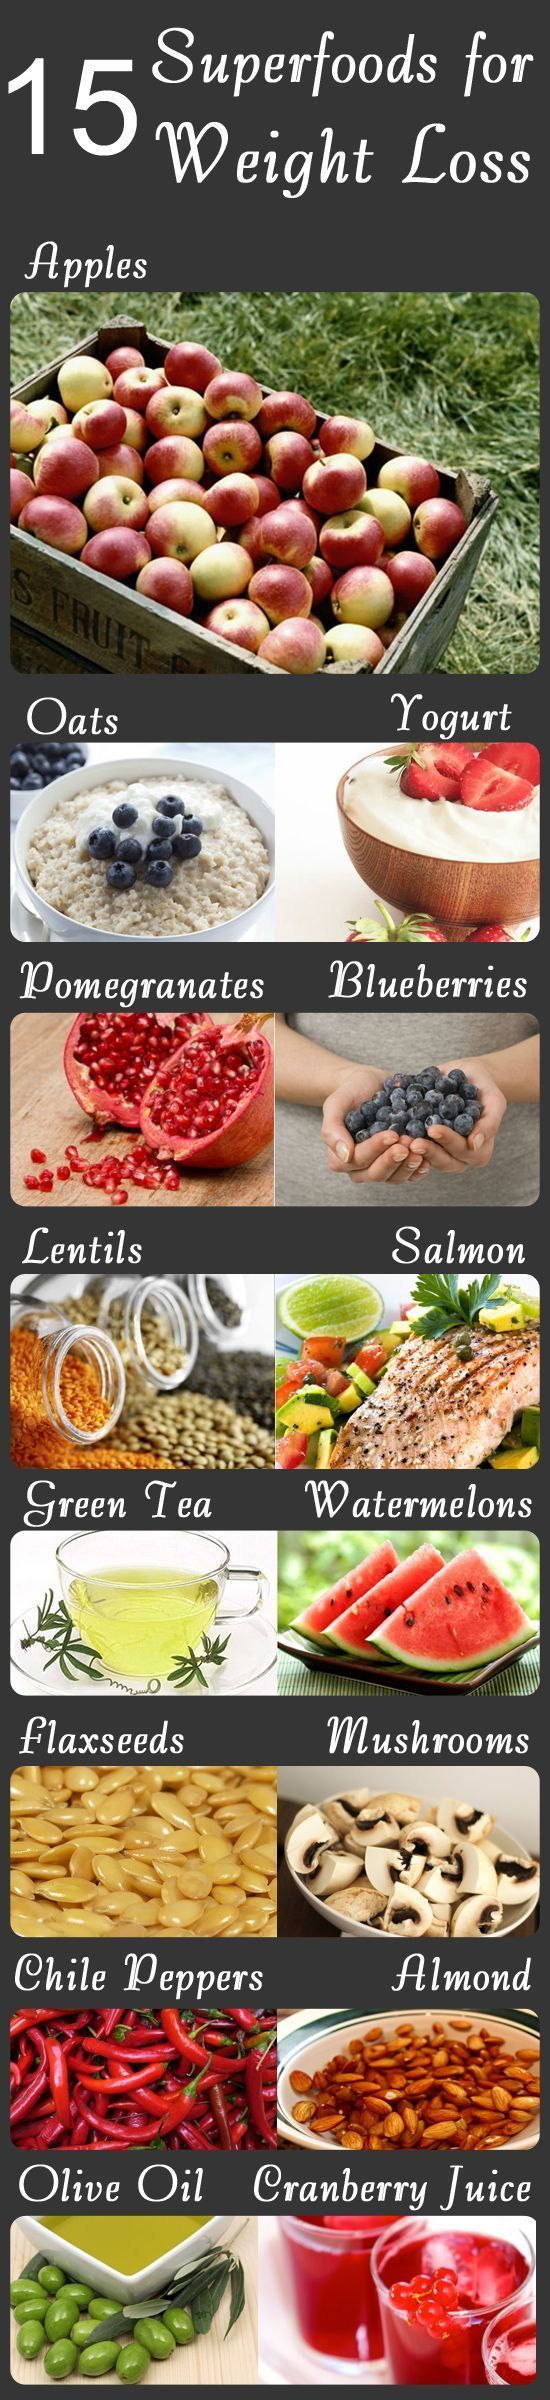 15 Superfoods For Weight Loss - Favorite Pins